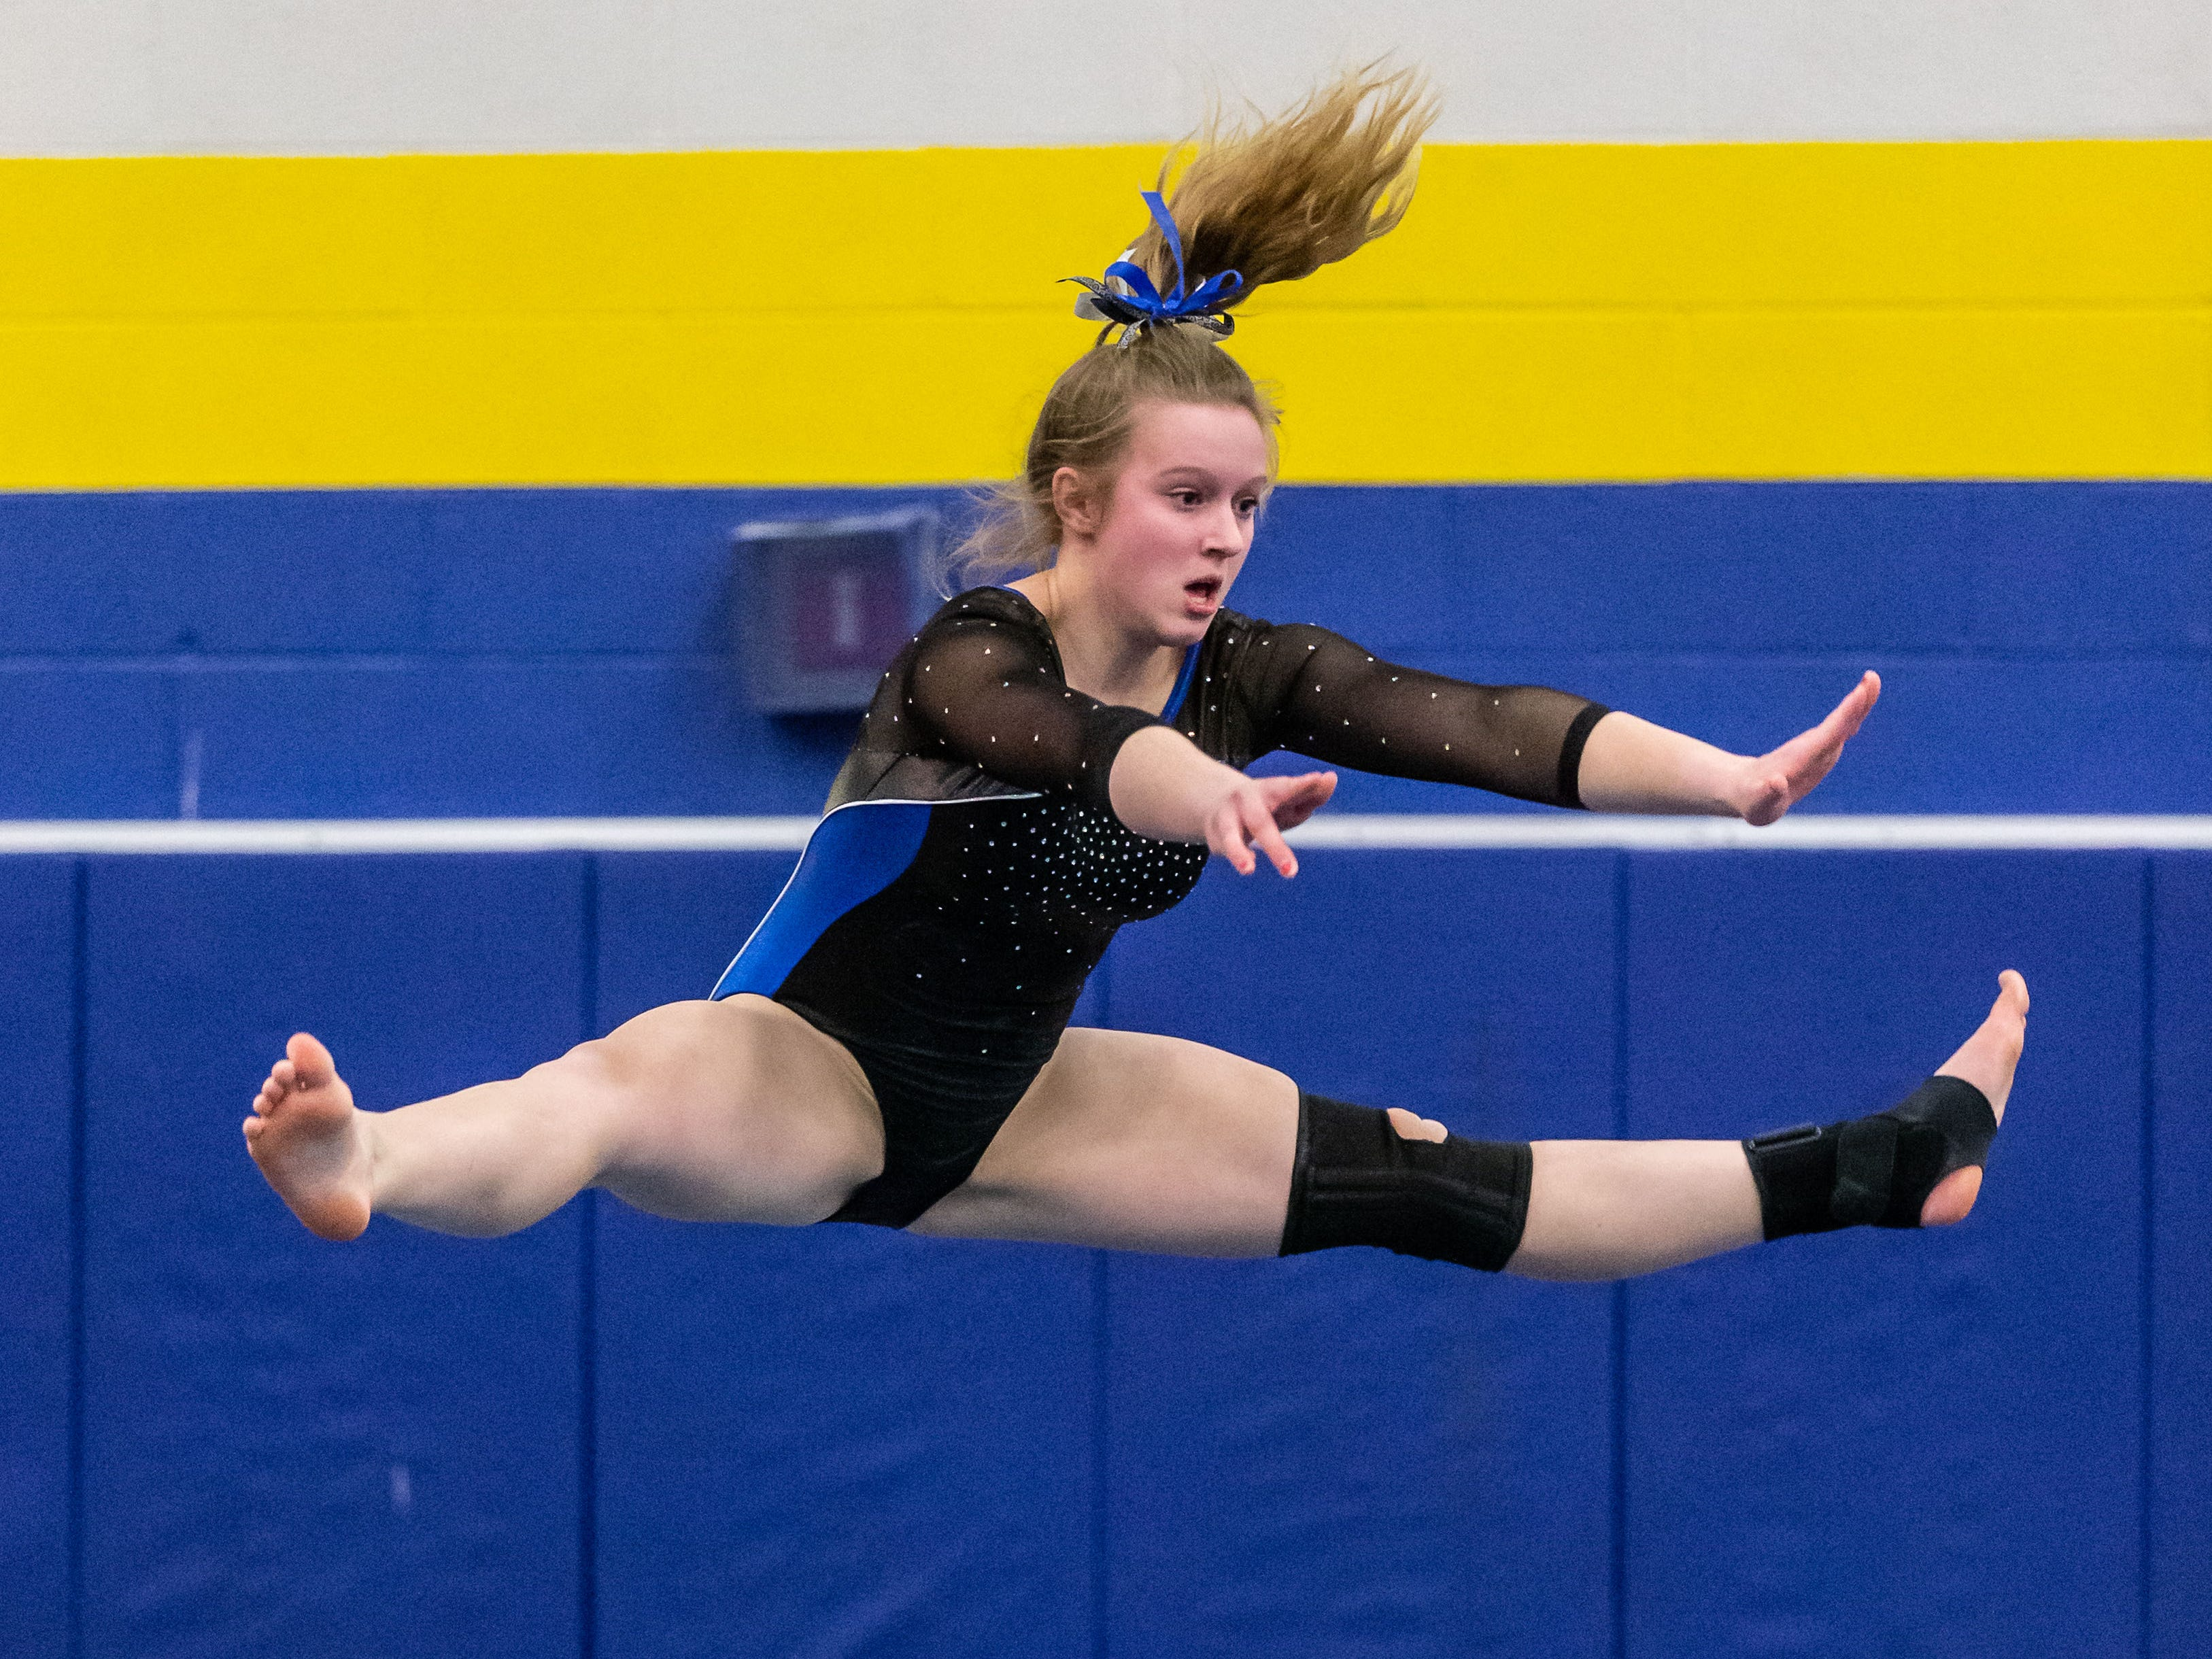 Mukwonago/Kettle Moraine co-op gymnast Ella Rageth competes on the floor during the Mukwonago Gymnastics Invite on Thursday, Jan. 10, 2019.